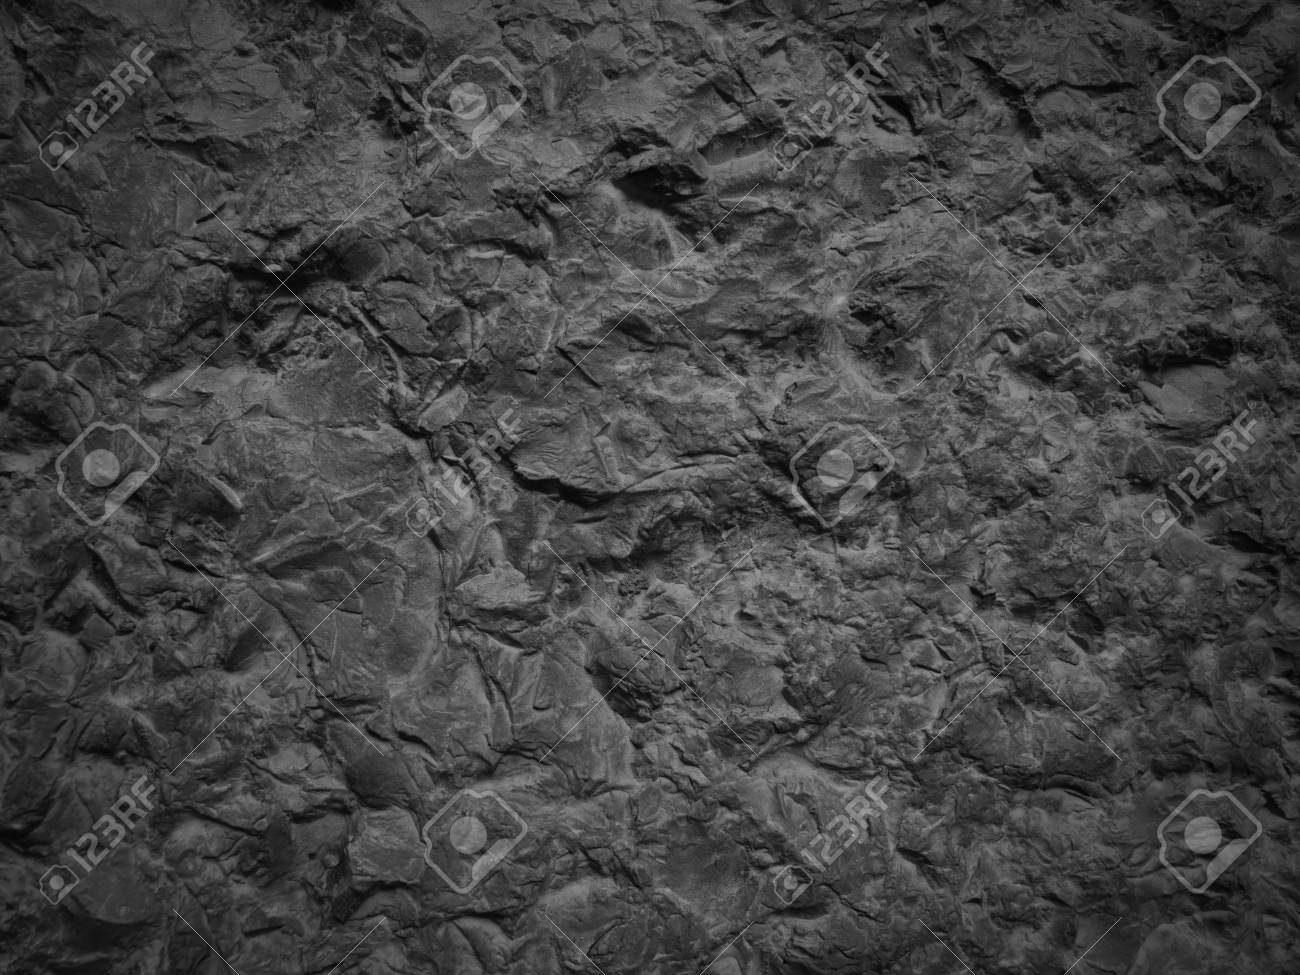 . dark stone texture or background